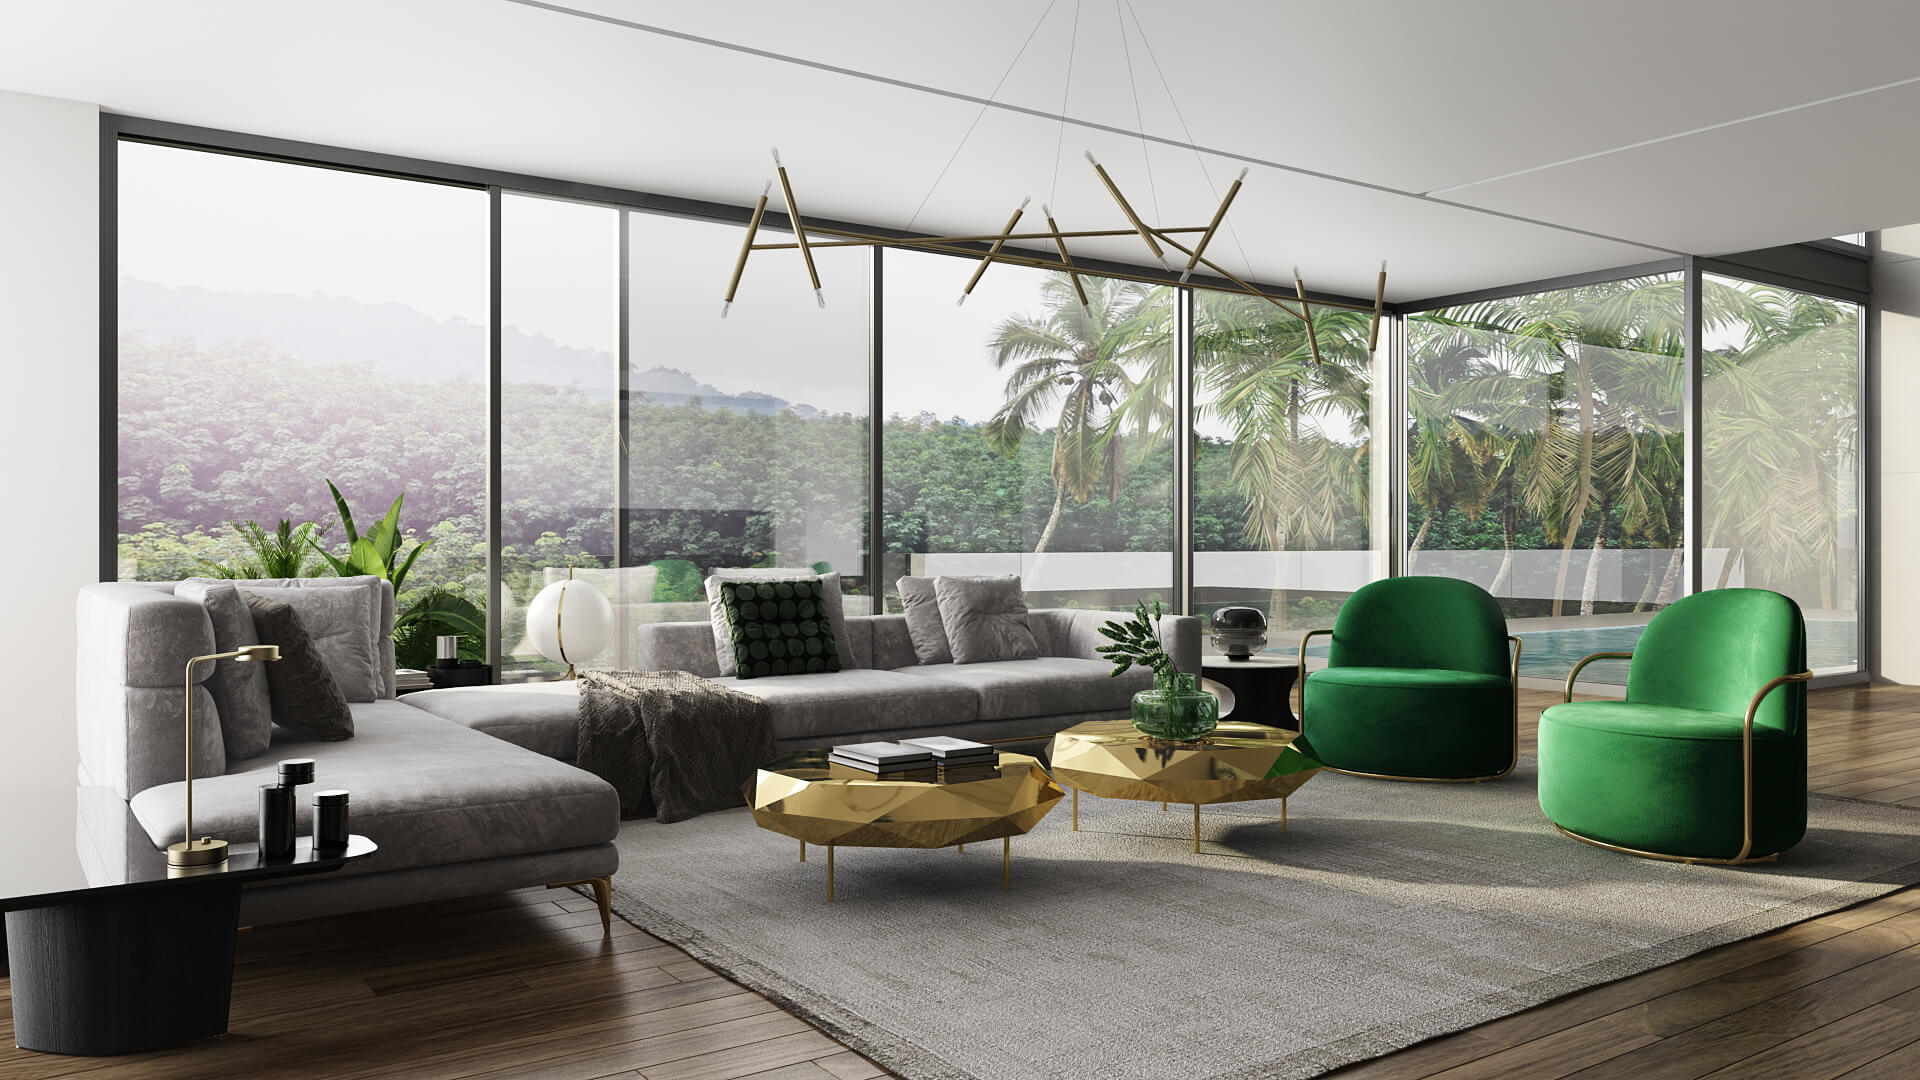 3D View of a Living Room Showing Elegant Interior Style